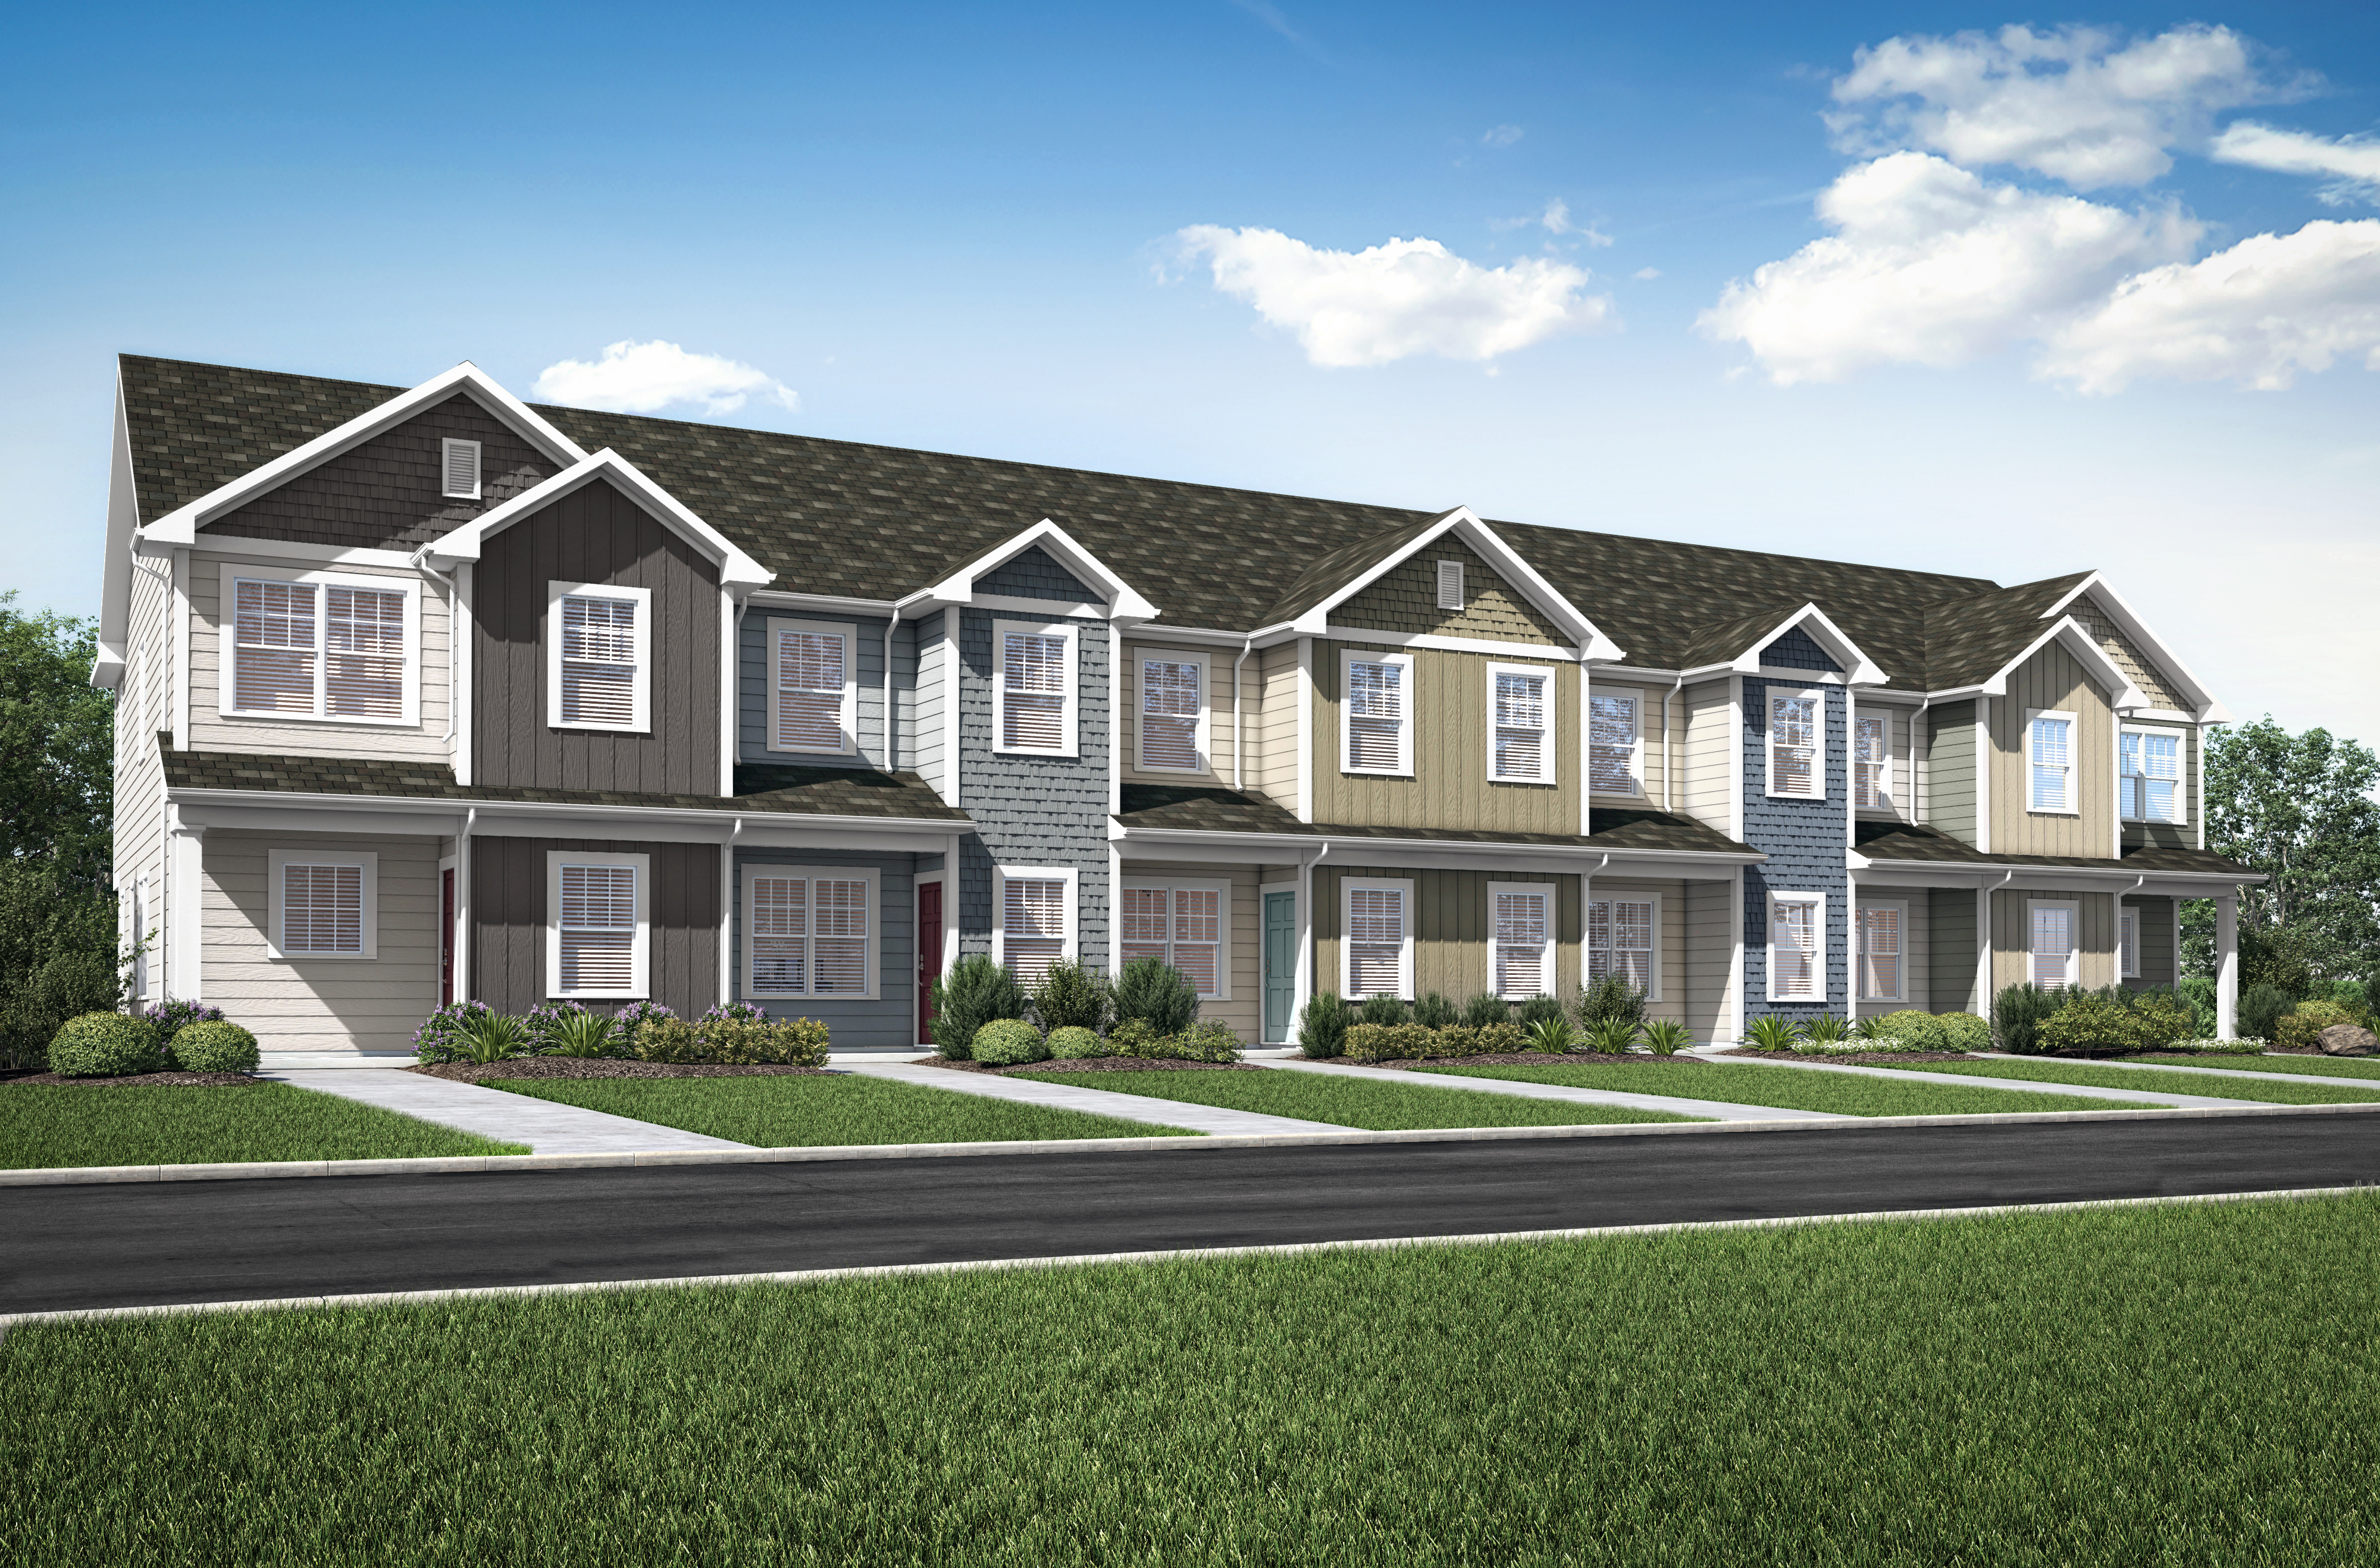 The Maple and Chestnut townhomes by LGI Homes at Carthage Townes